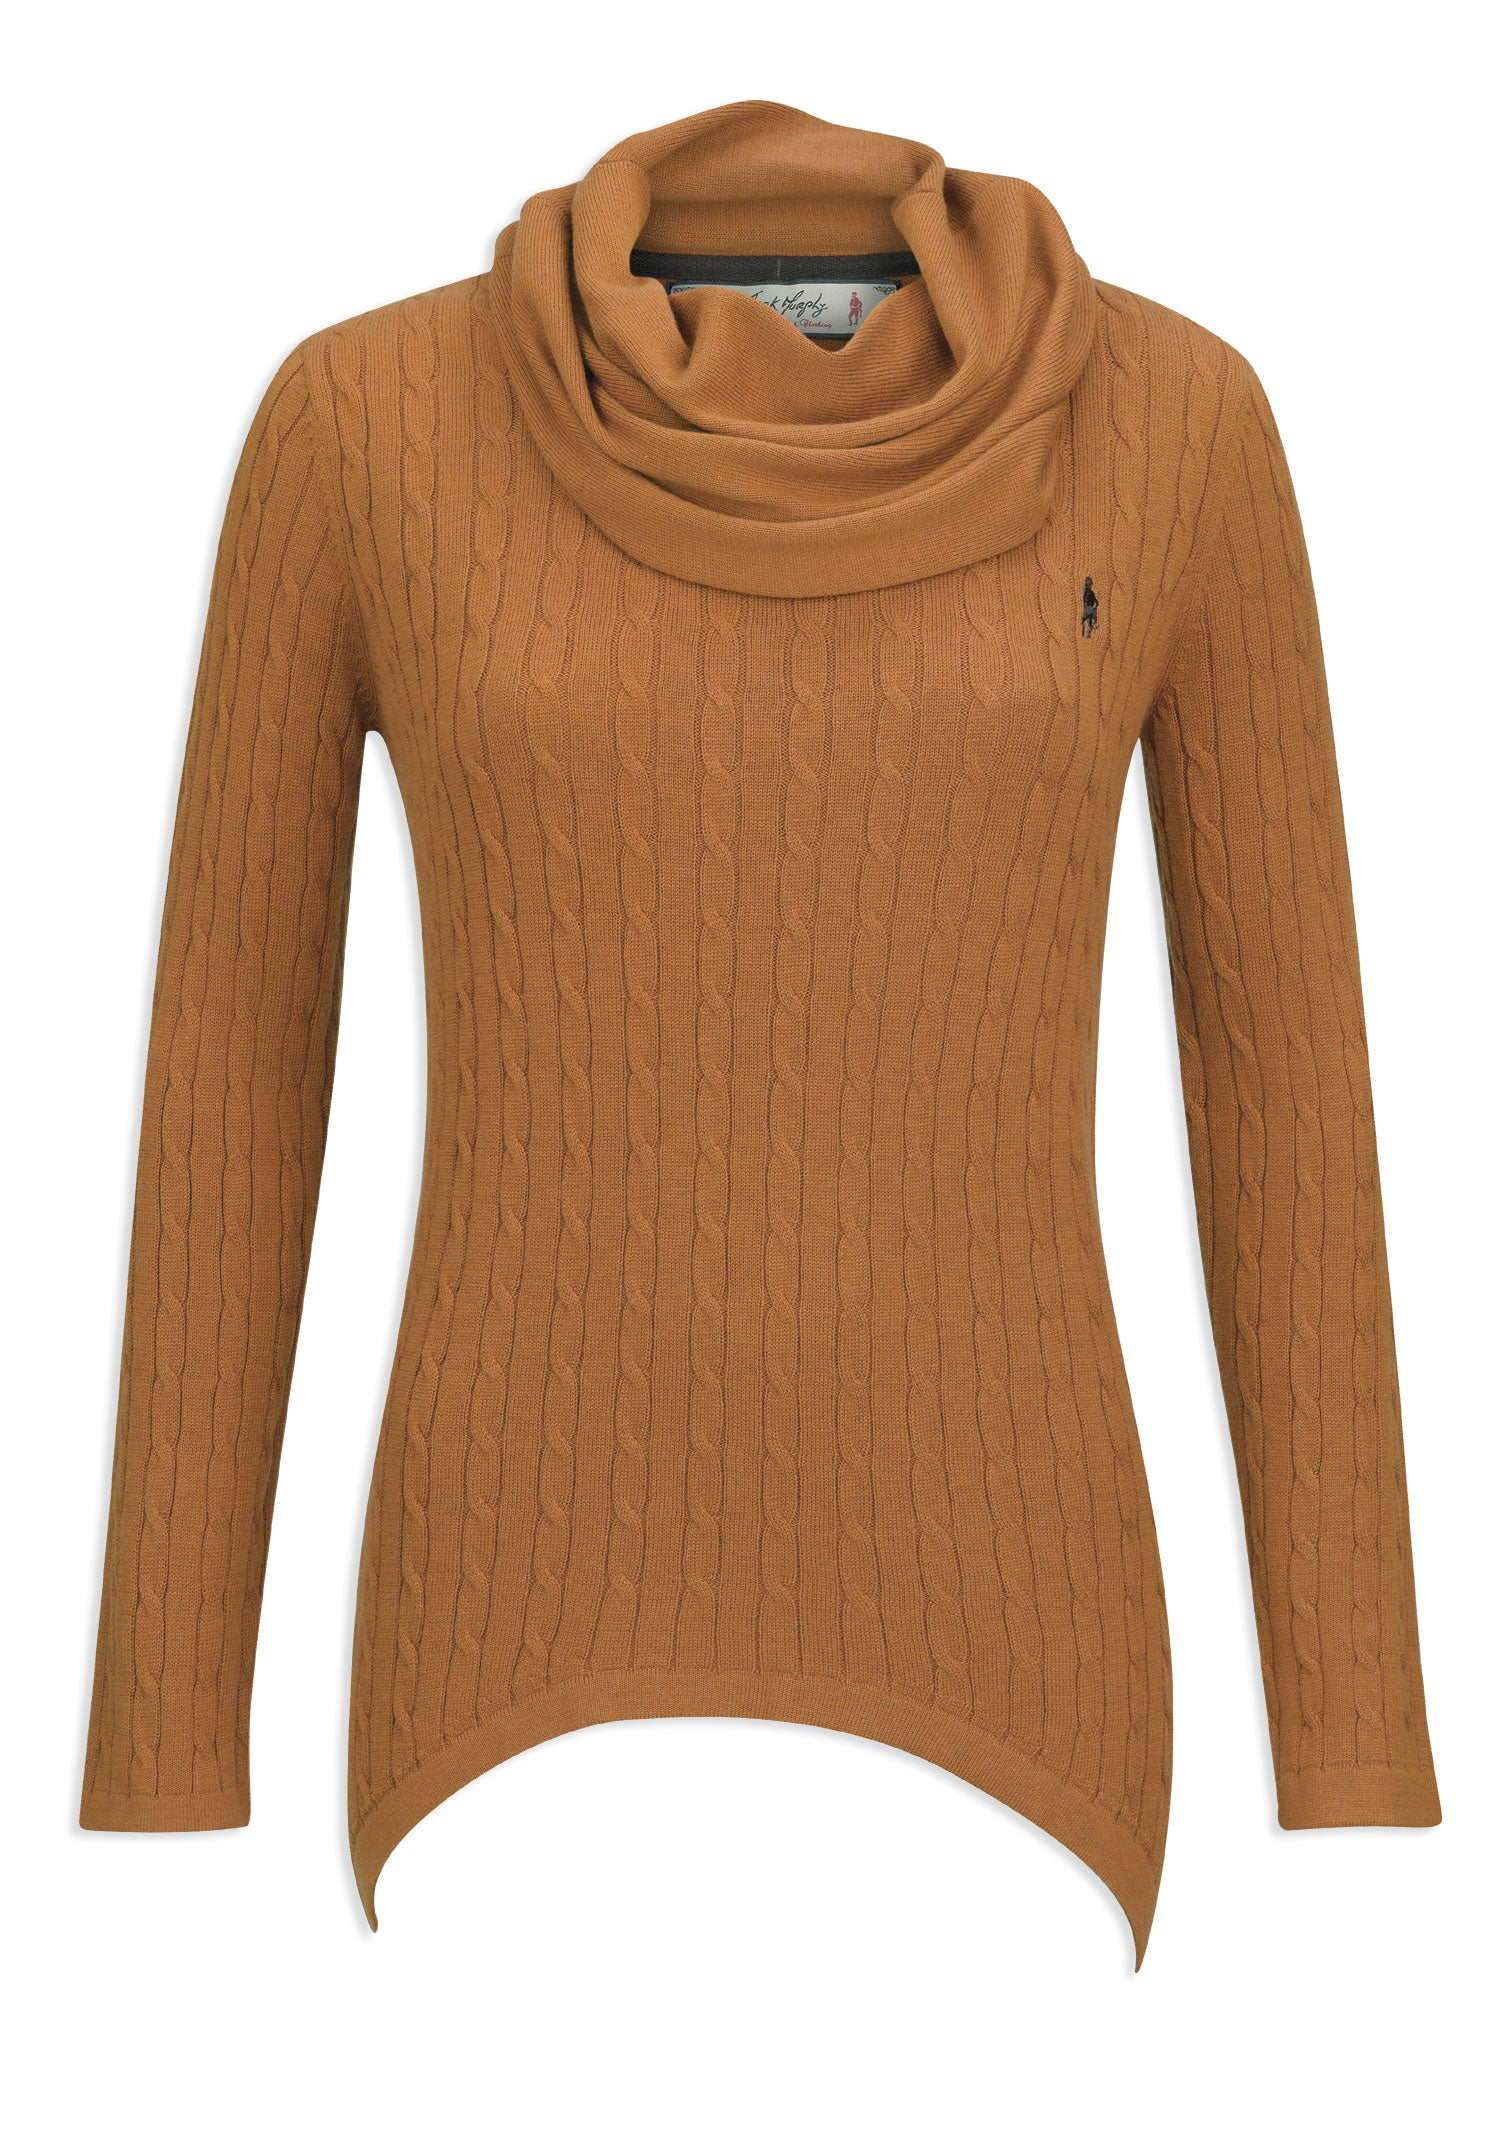 Jack Murphy Tiffany Cowl Neck Sweater | Yellow spice